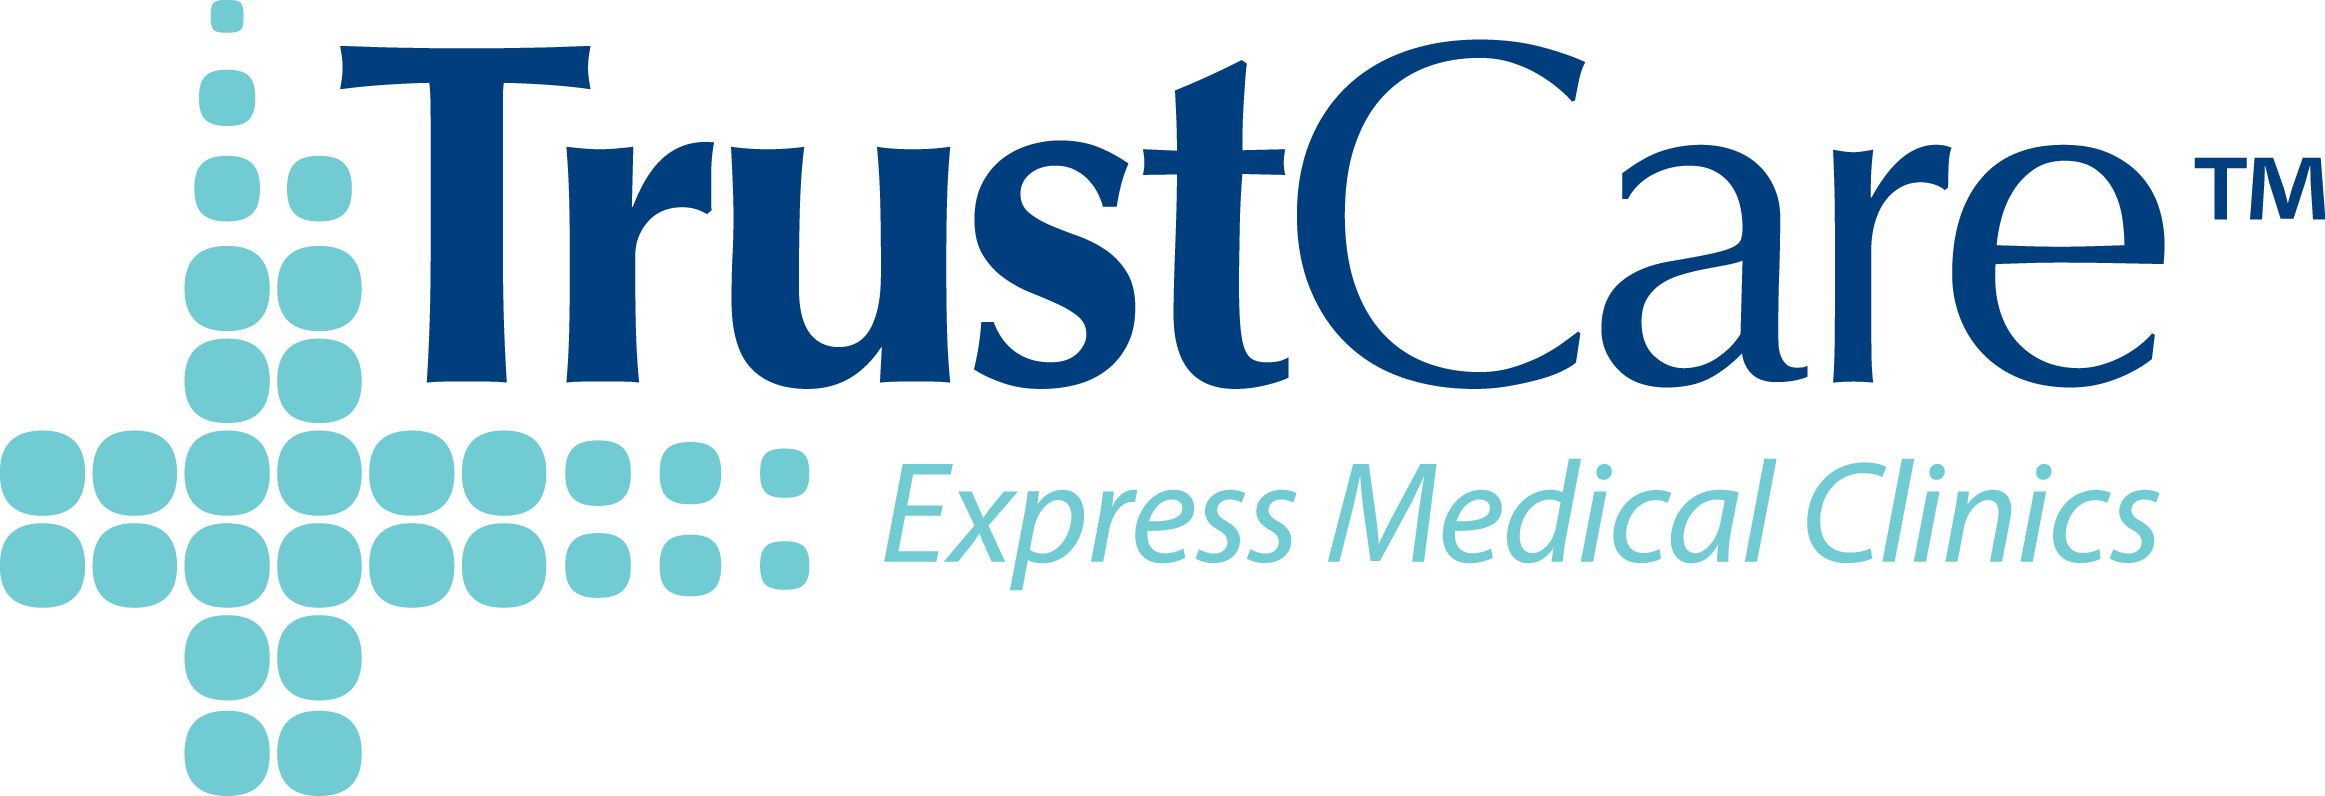 Trust Care express medical clinic